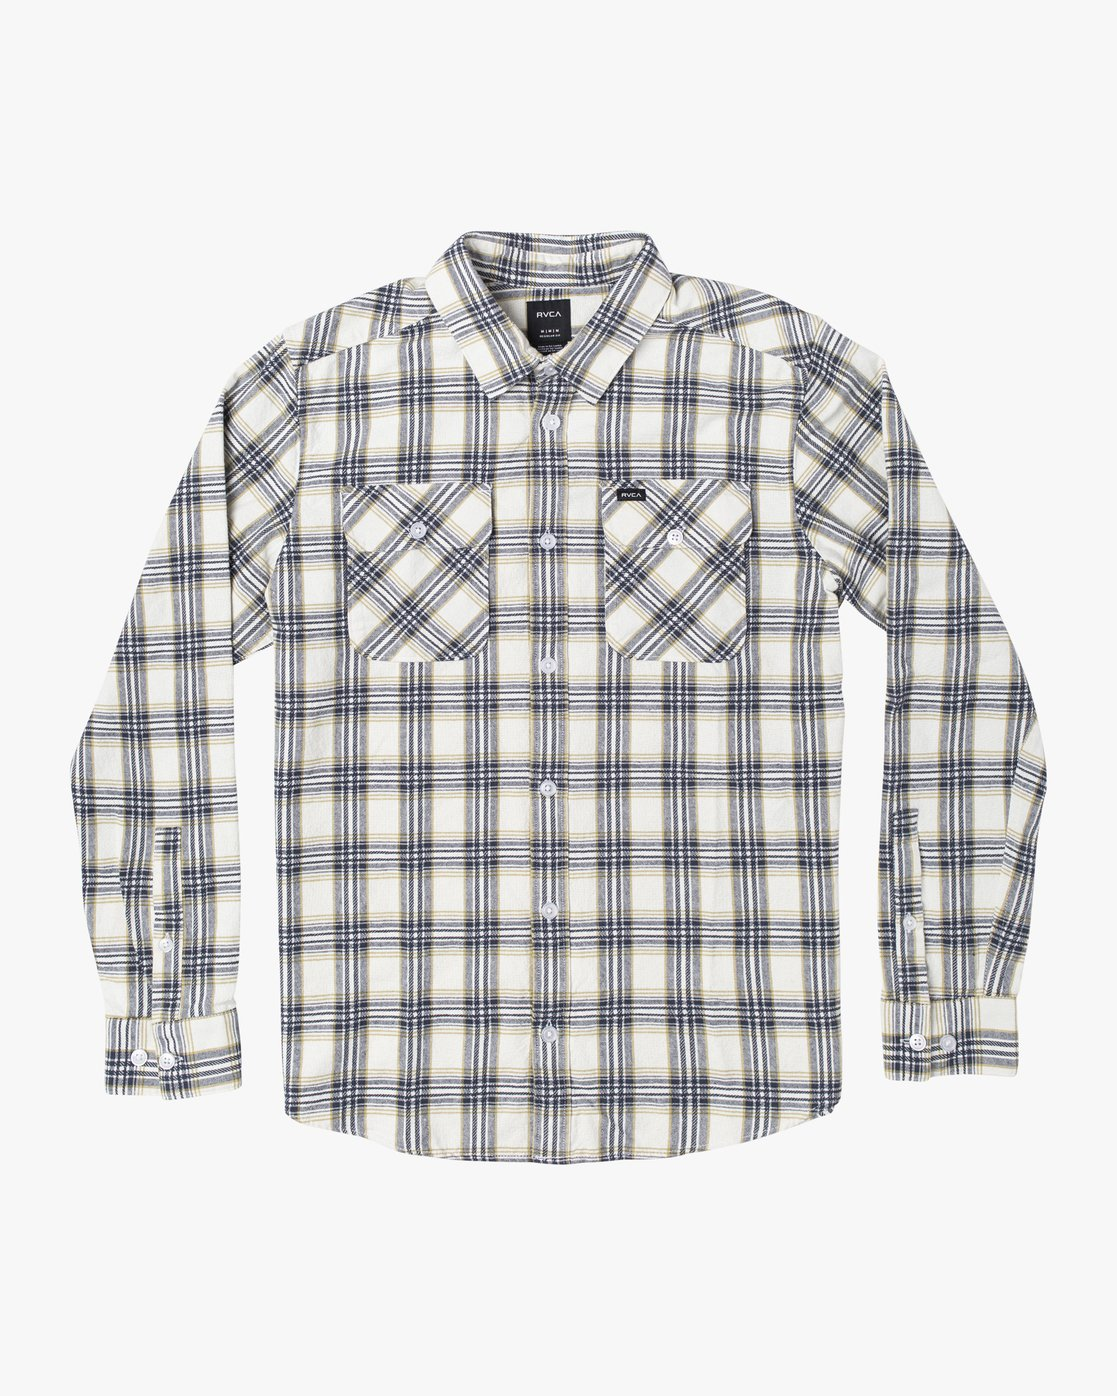 0 THATLL WORK FLANNEL LONG SLEEVE SHIRT White M5993RTW RVCA